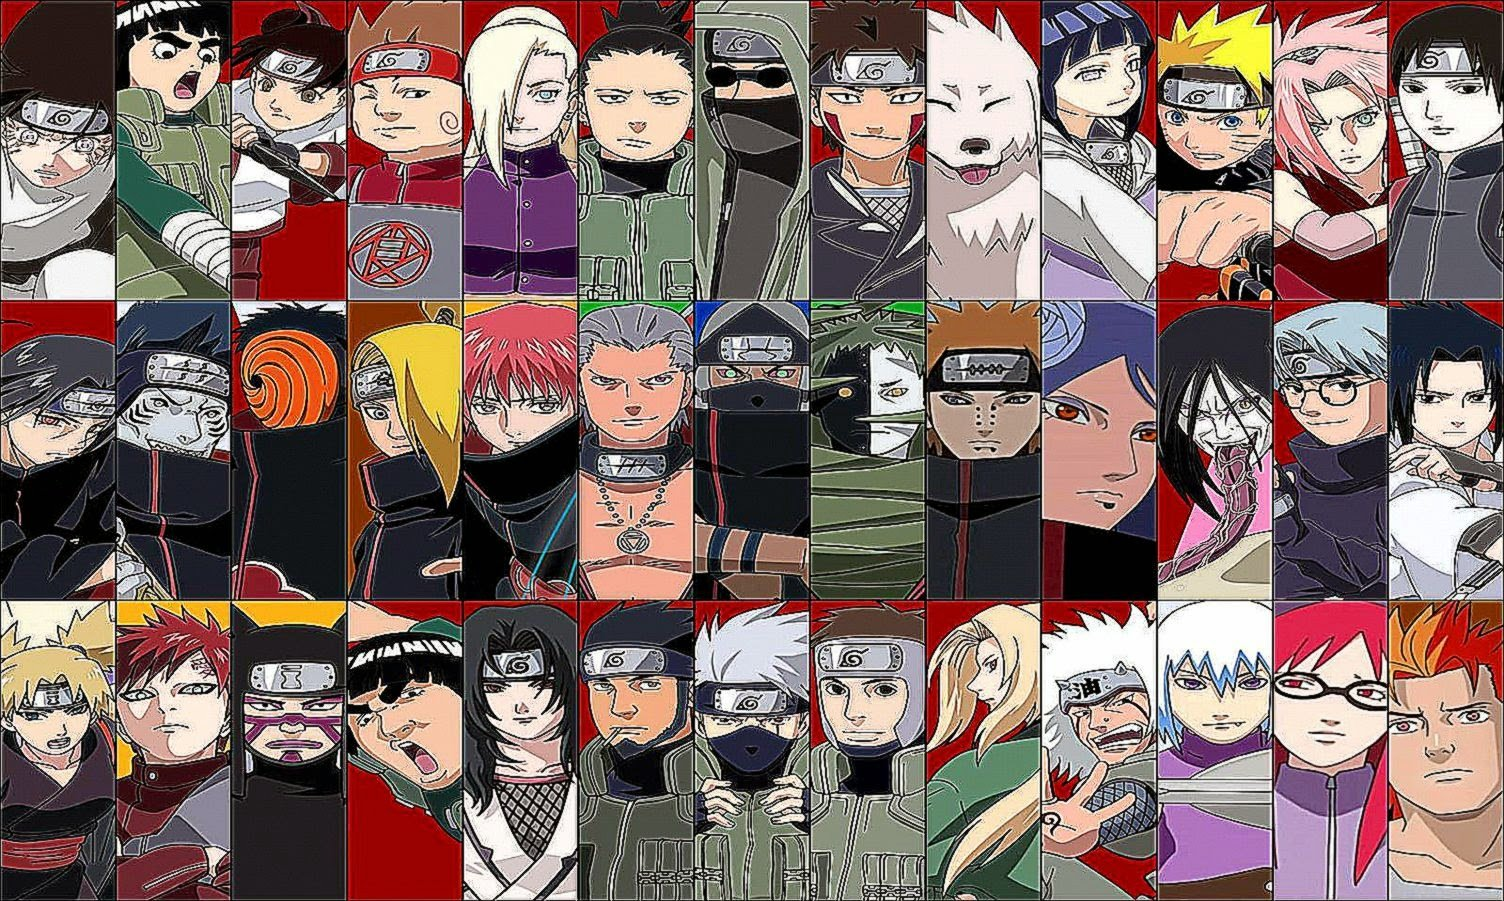 Free Download Naruto Shippuden All Characters Wallpaper 1504x901 For Your Desktop Mobile Tablet Explore 78 Naruto Characters Wallpaper Hd Naruto Wallpapers Naruto Laptop Wallpapers